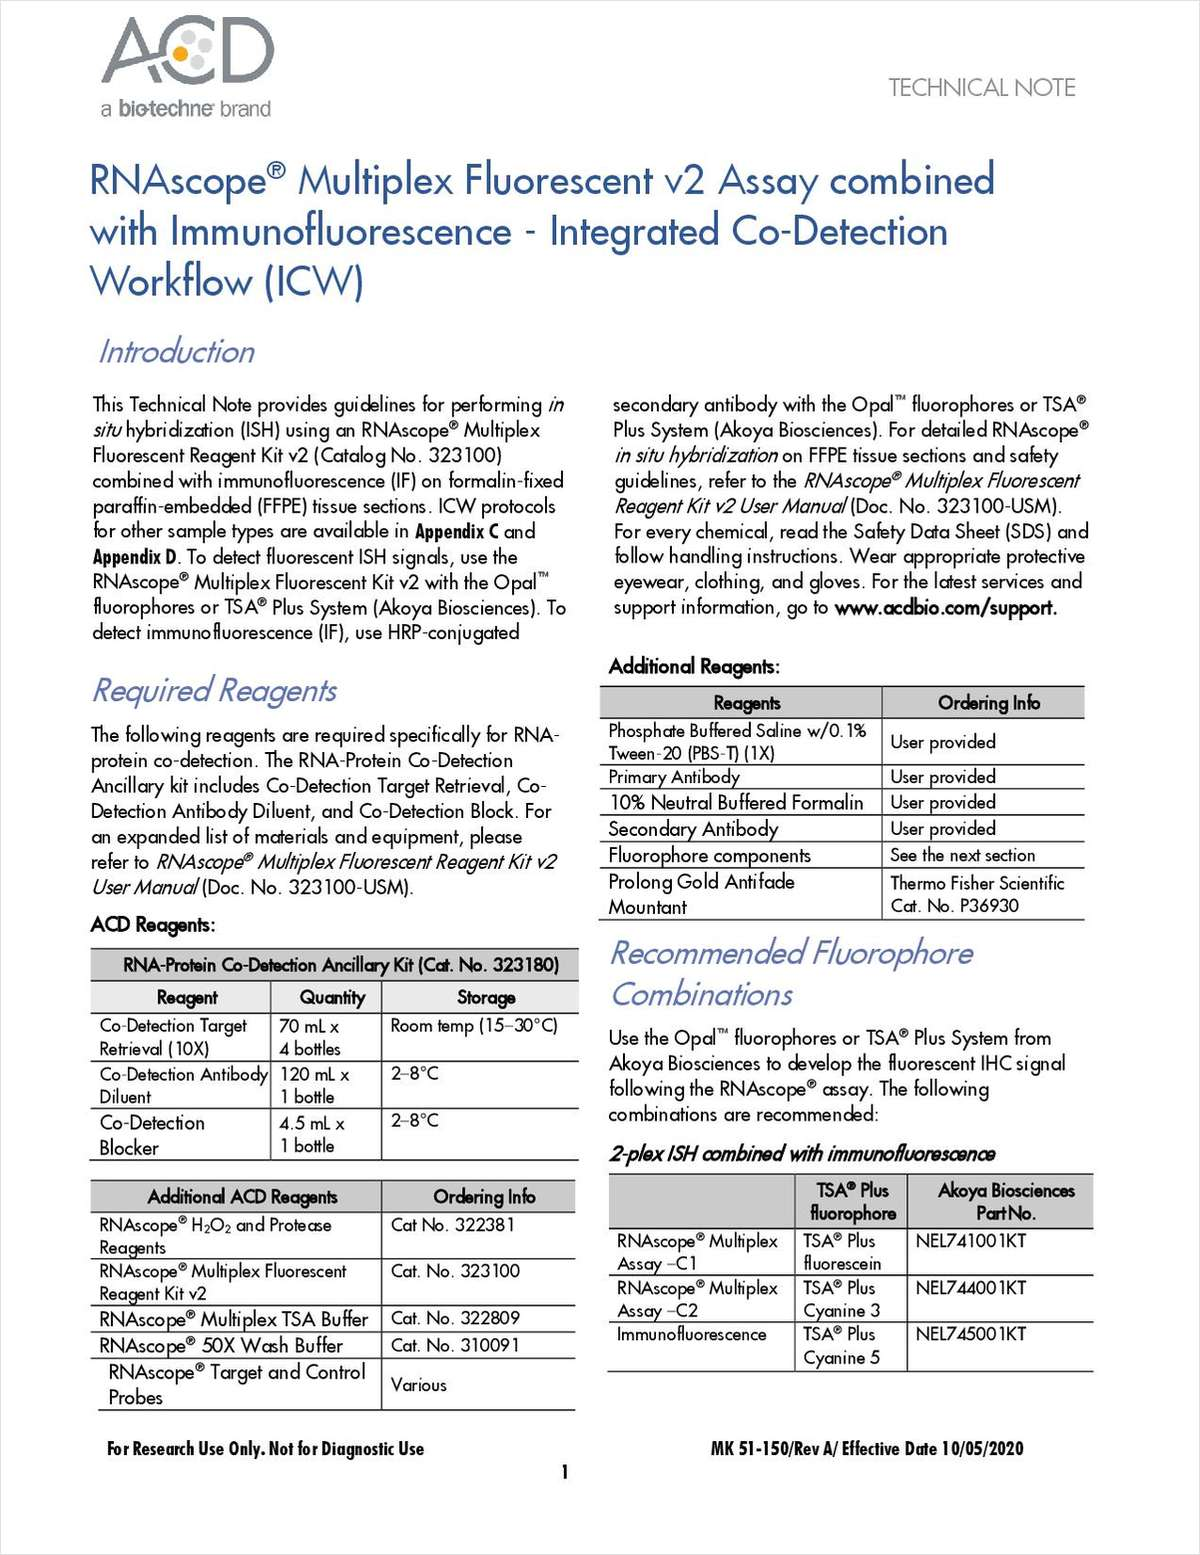 RNAscope Multiplex Fluorescent v2 Assay Combined with Immunofluorescence: Integrated Co-Detection Workflow (ICW)